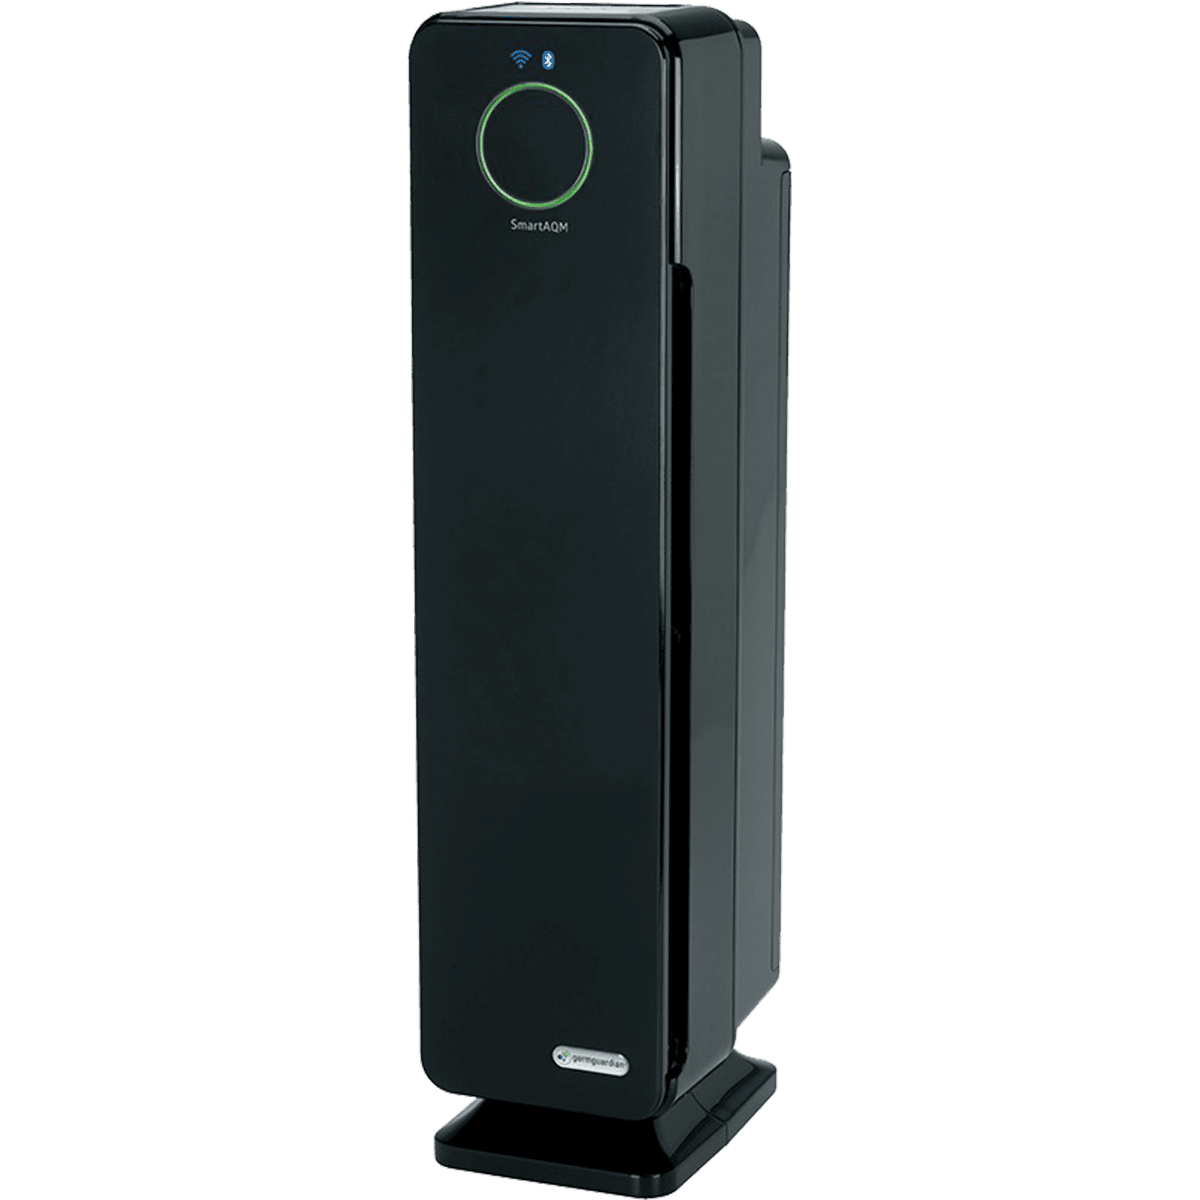 GermGuardian 4-in-1 Wifi Smart Tower Air Purifier Model: CDAP5500BCA